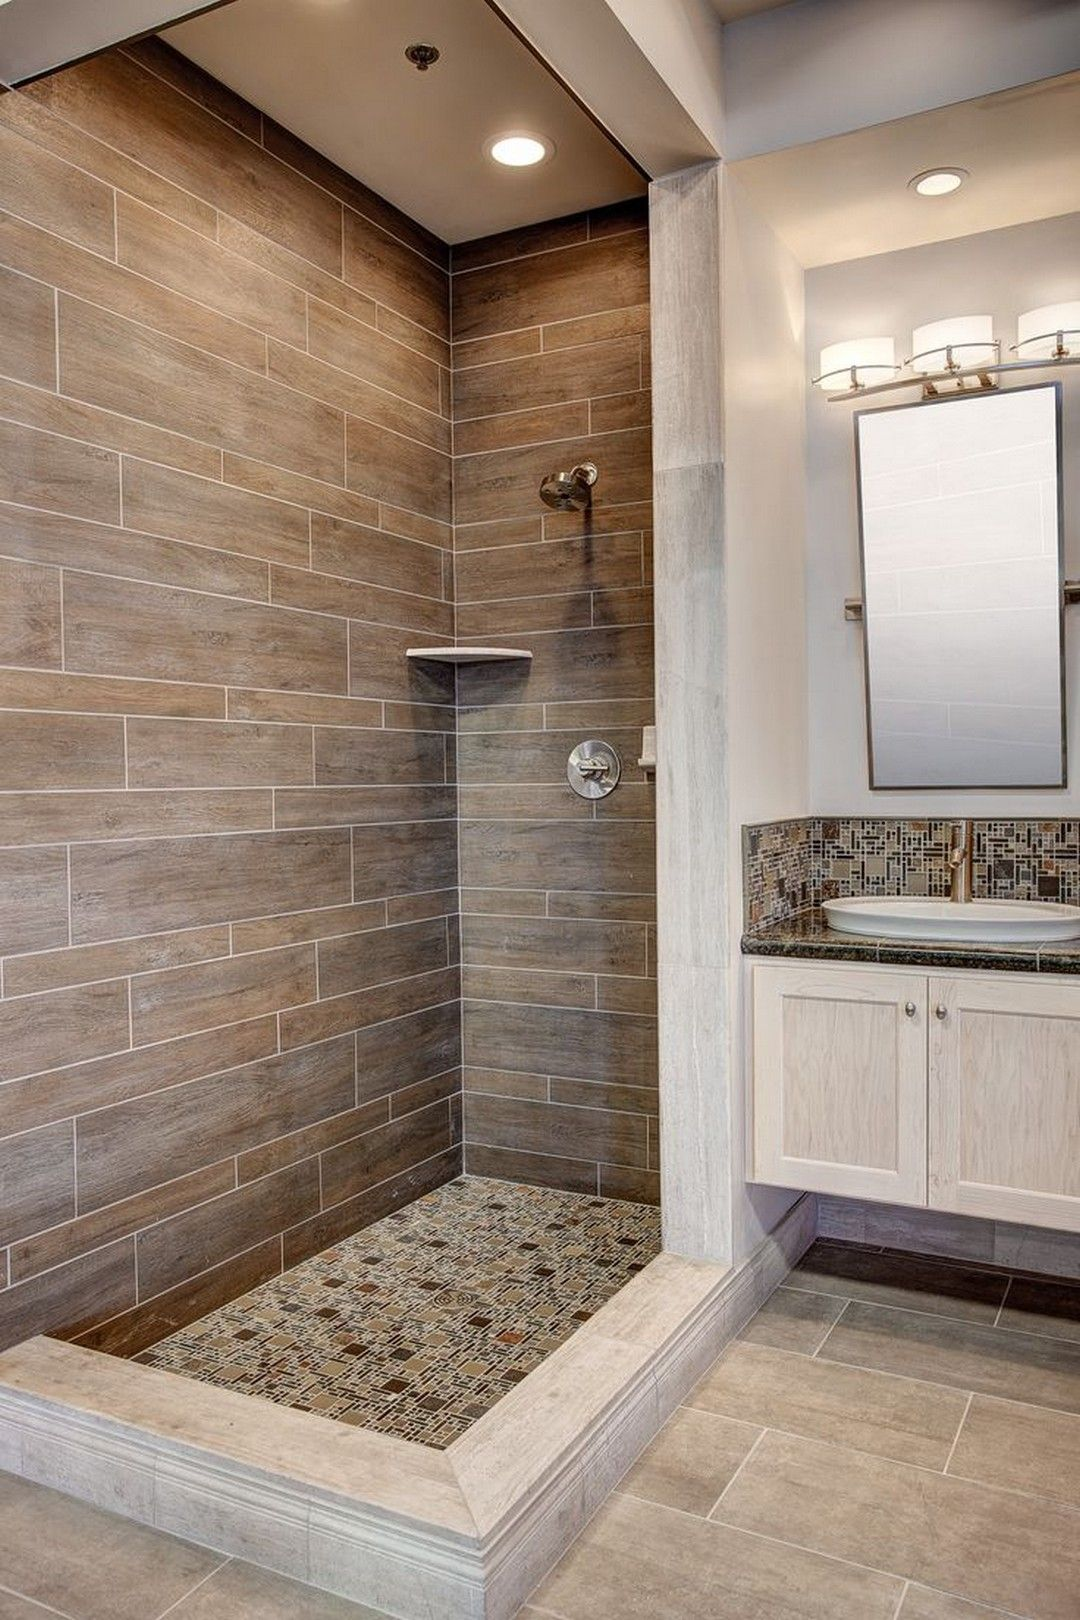 Charmant Nice 99 New Trends Bathroom Tile Design Inspiration 2017  Http://www.99architecture.com/2017/03/10/99 New Trends Bathroom Tile Design  Inspiration 2017/